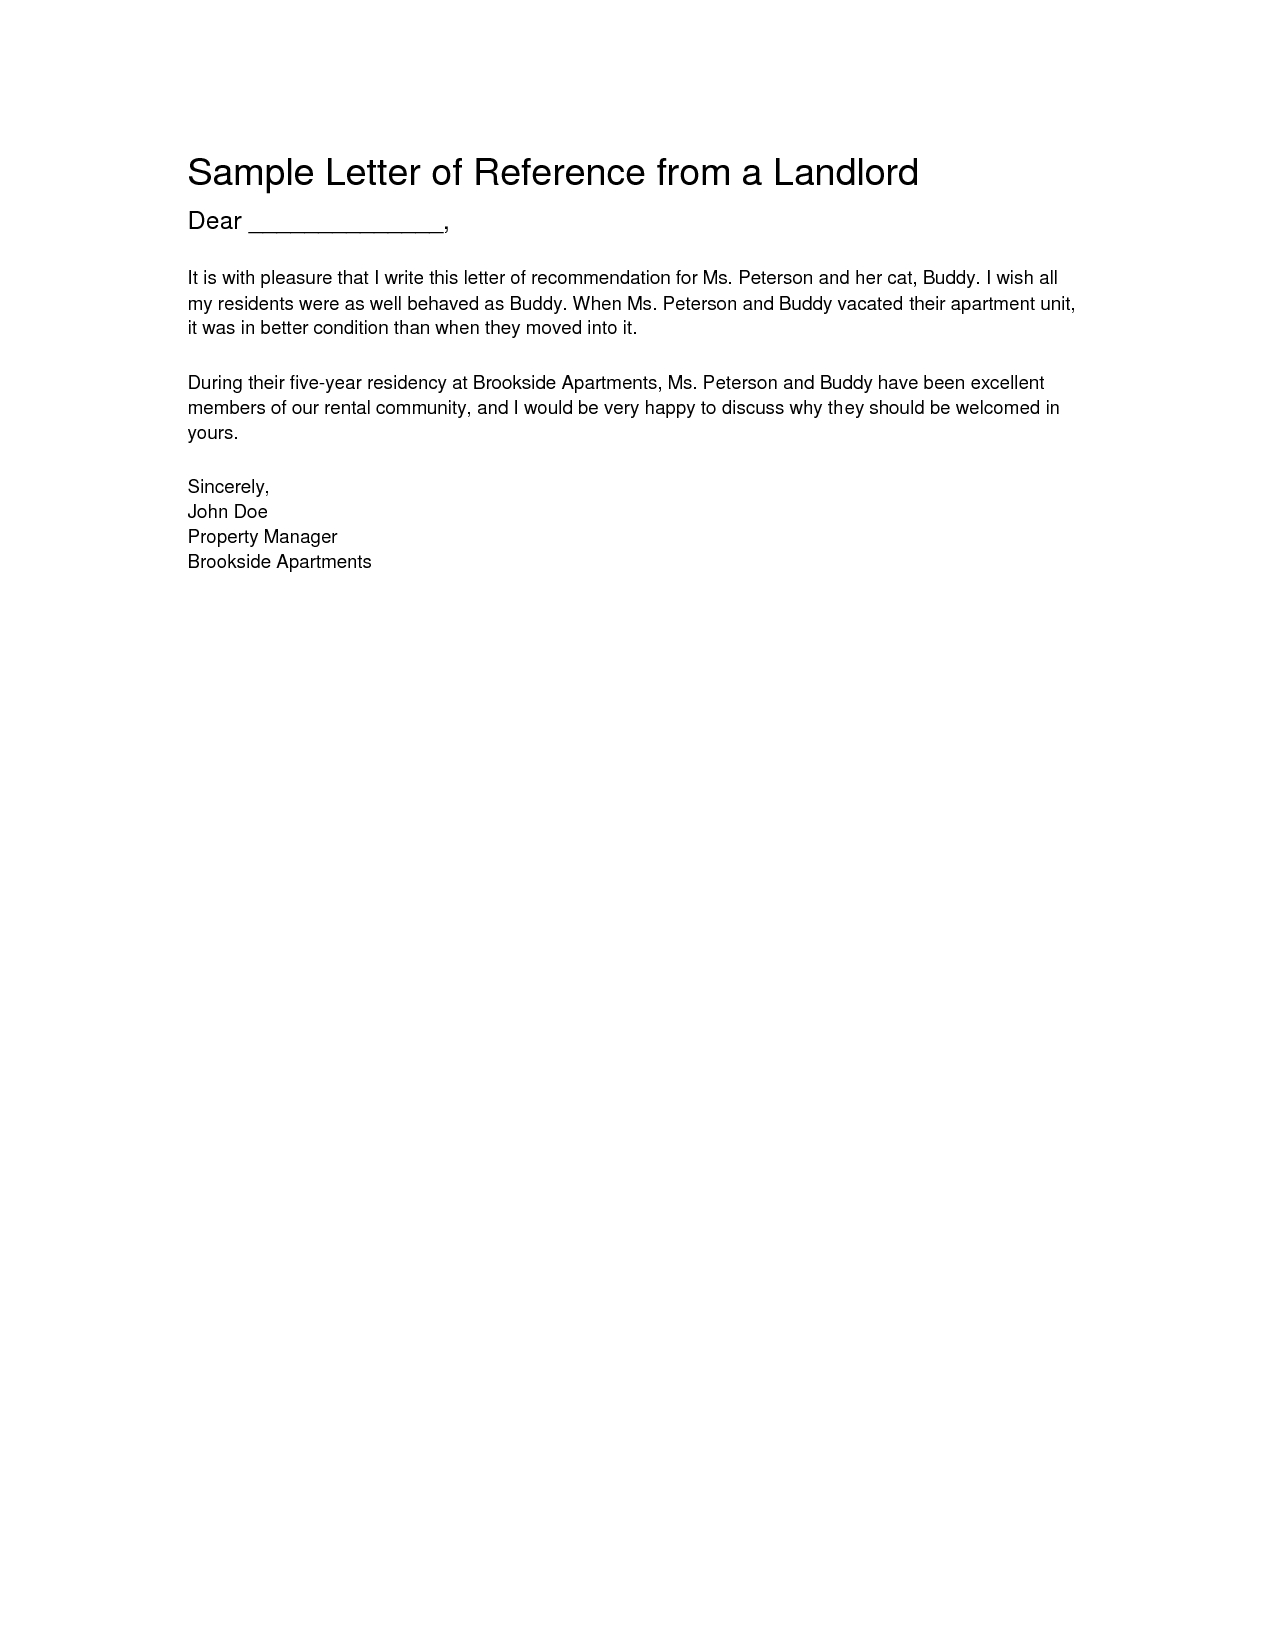 Tenant Reference Letter Template - Letter Re Mendation From Landlord Letter Of Re Mendation